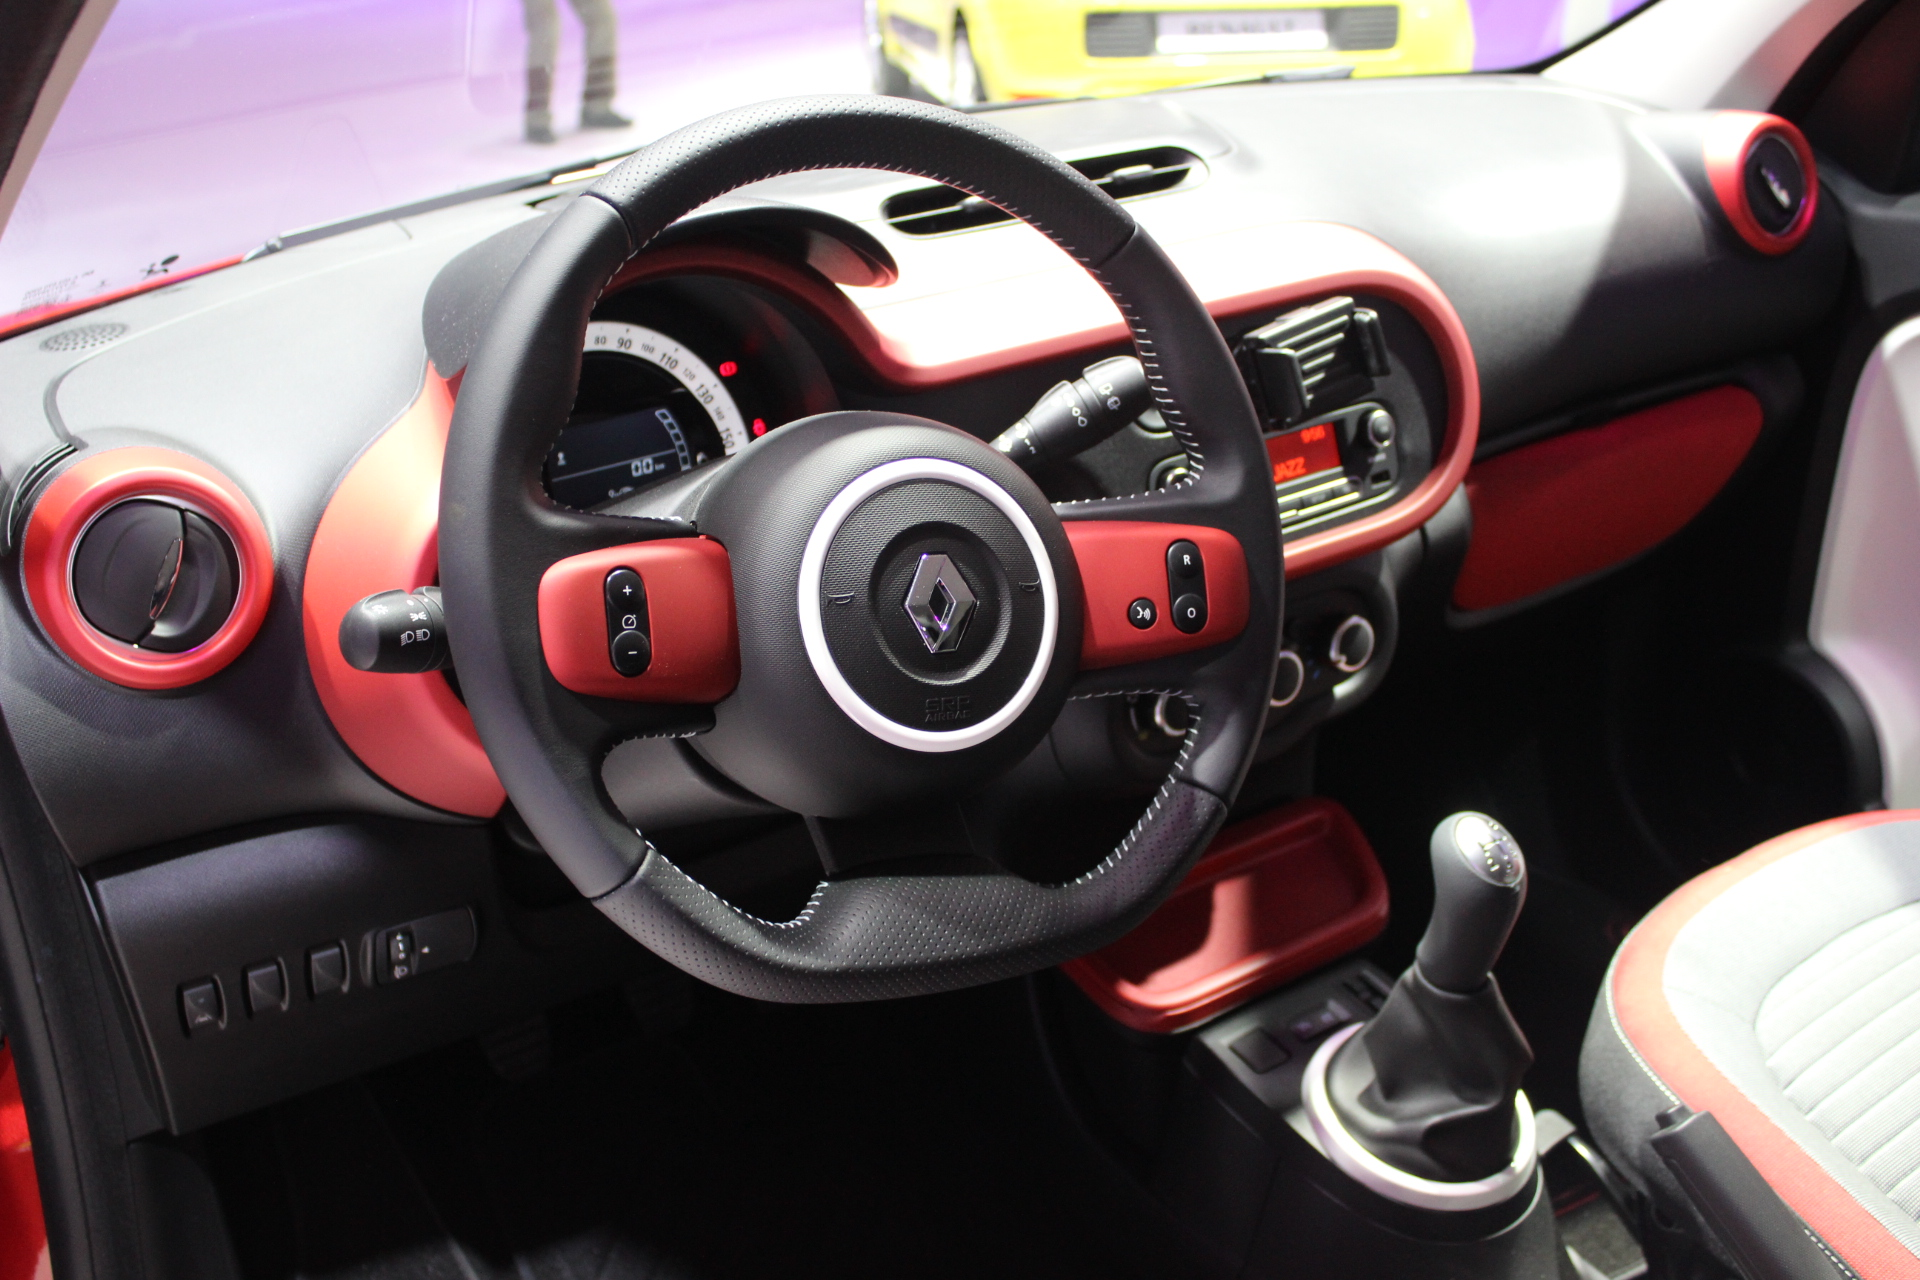 renault twingo 3 sortie nationale vid o en direct du salon de paris 2014. Black Bedroom Furniture Sets. Home Design Ideas